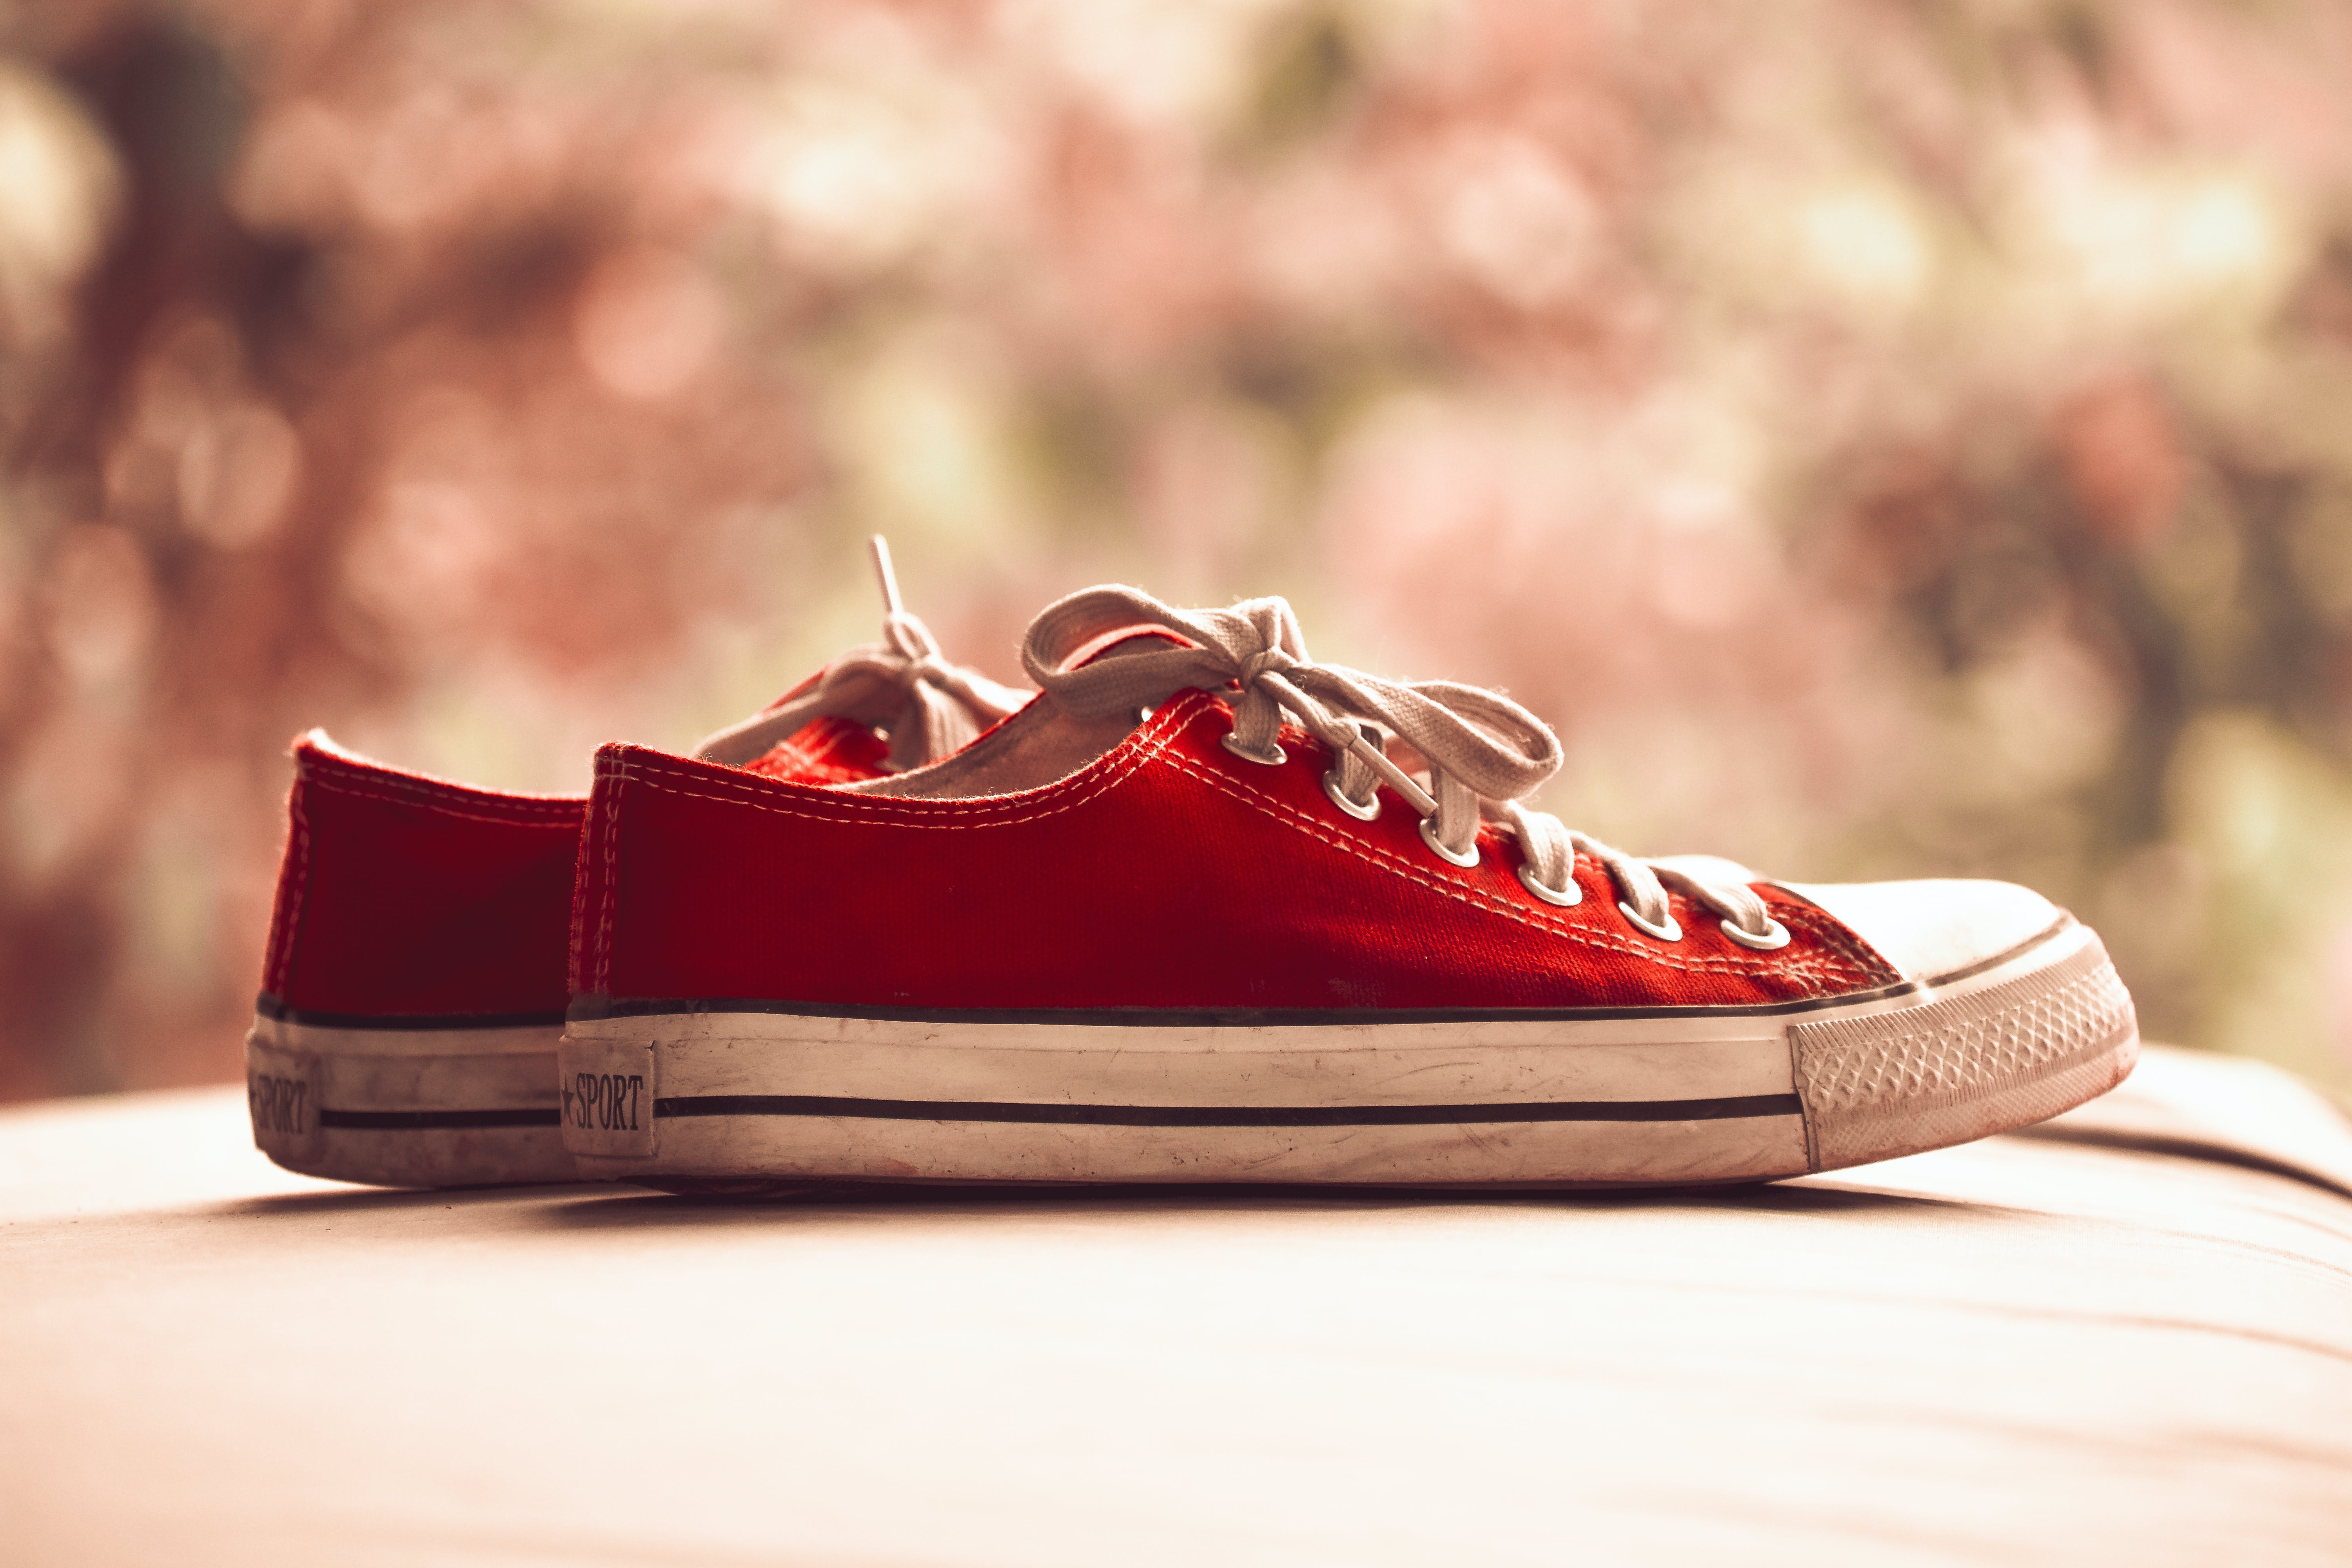 Pair of Red Low-top Sneakers in Bokeh Photography